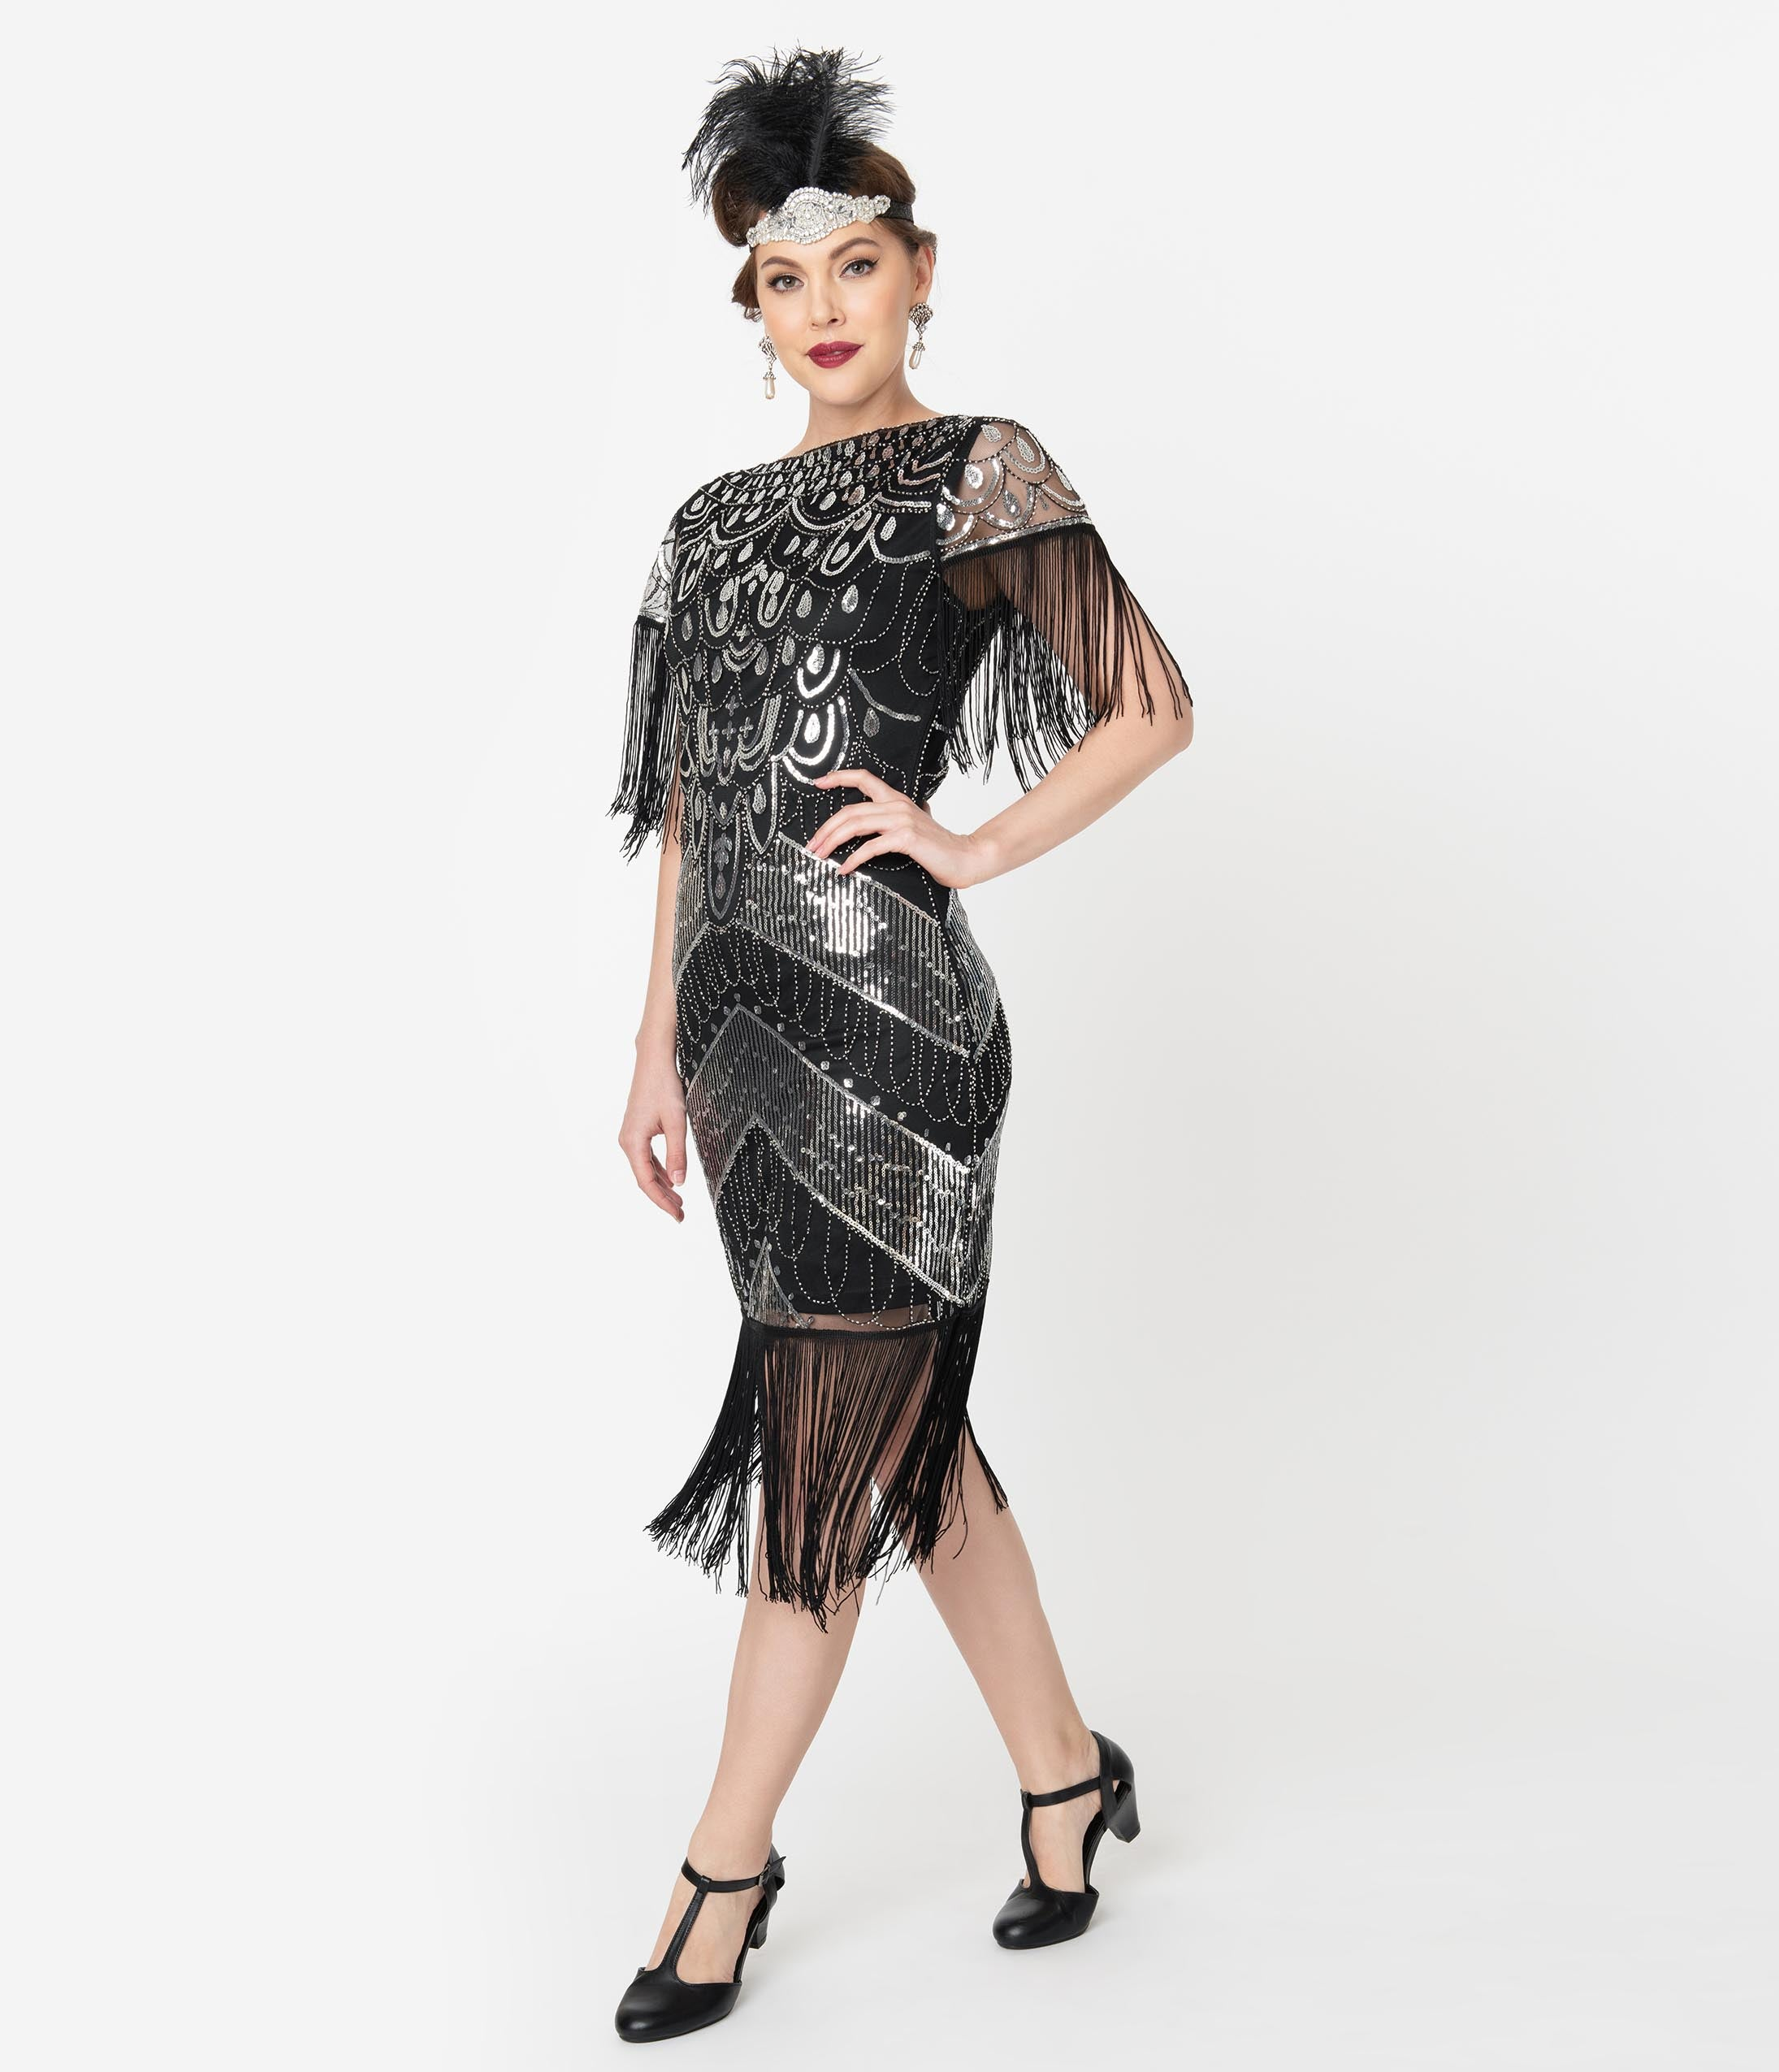 1920s Evening Dresses & Formal Gowns Unique Vintage Black  Silver Sequin Fringe Sleeved Laure Flapper Dress $98.00 AT vintagedancer.com